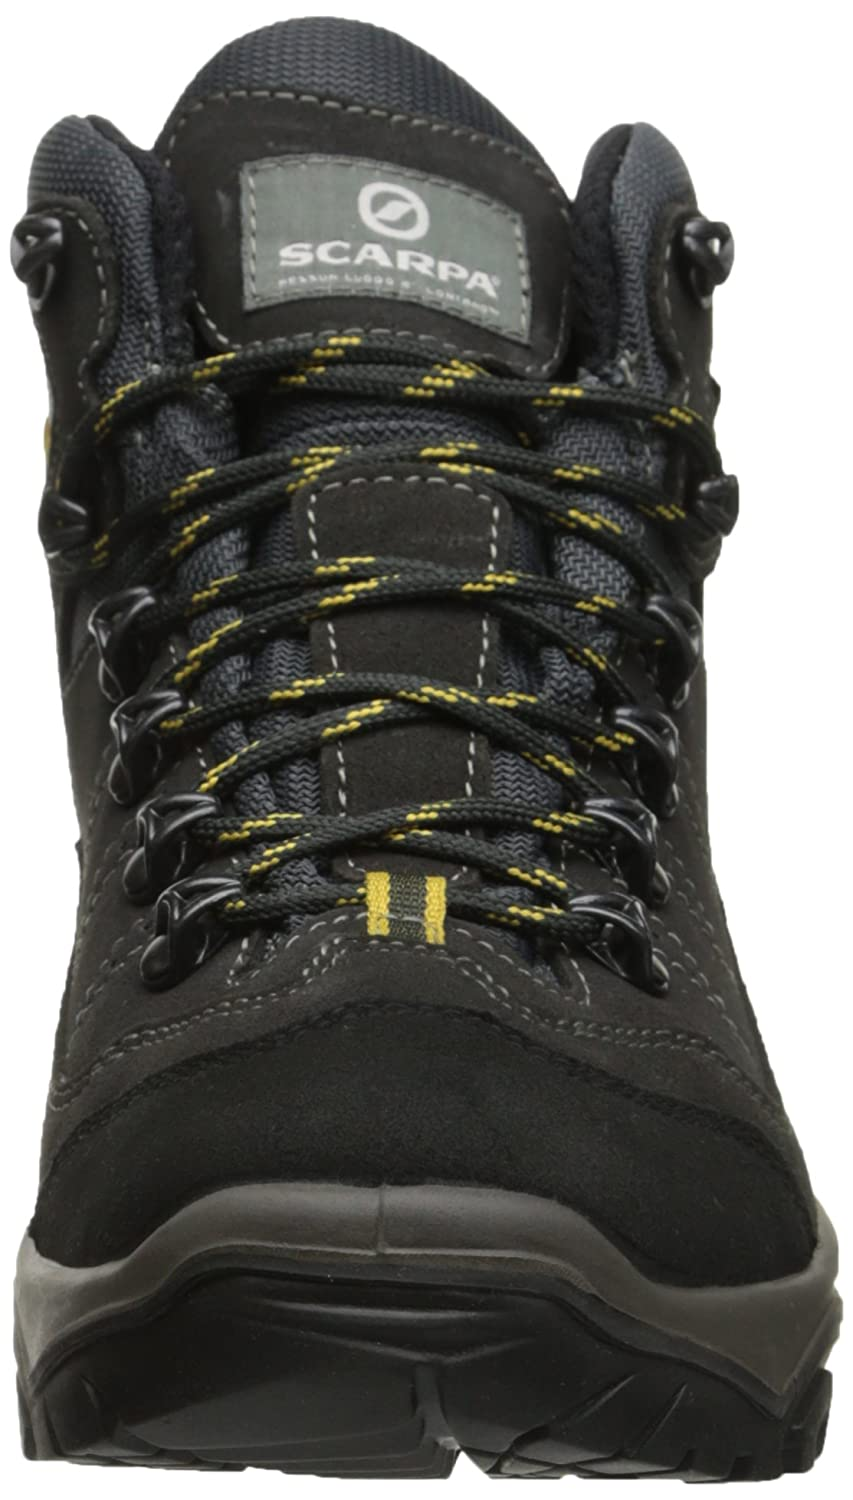 c6b74f353c2 Scarpa Men's Mistral GTX Hiking Boot